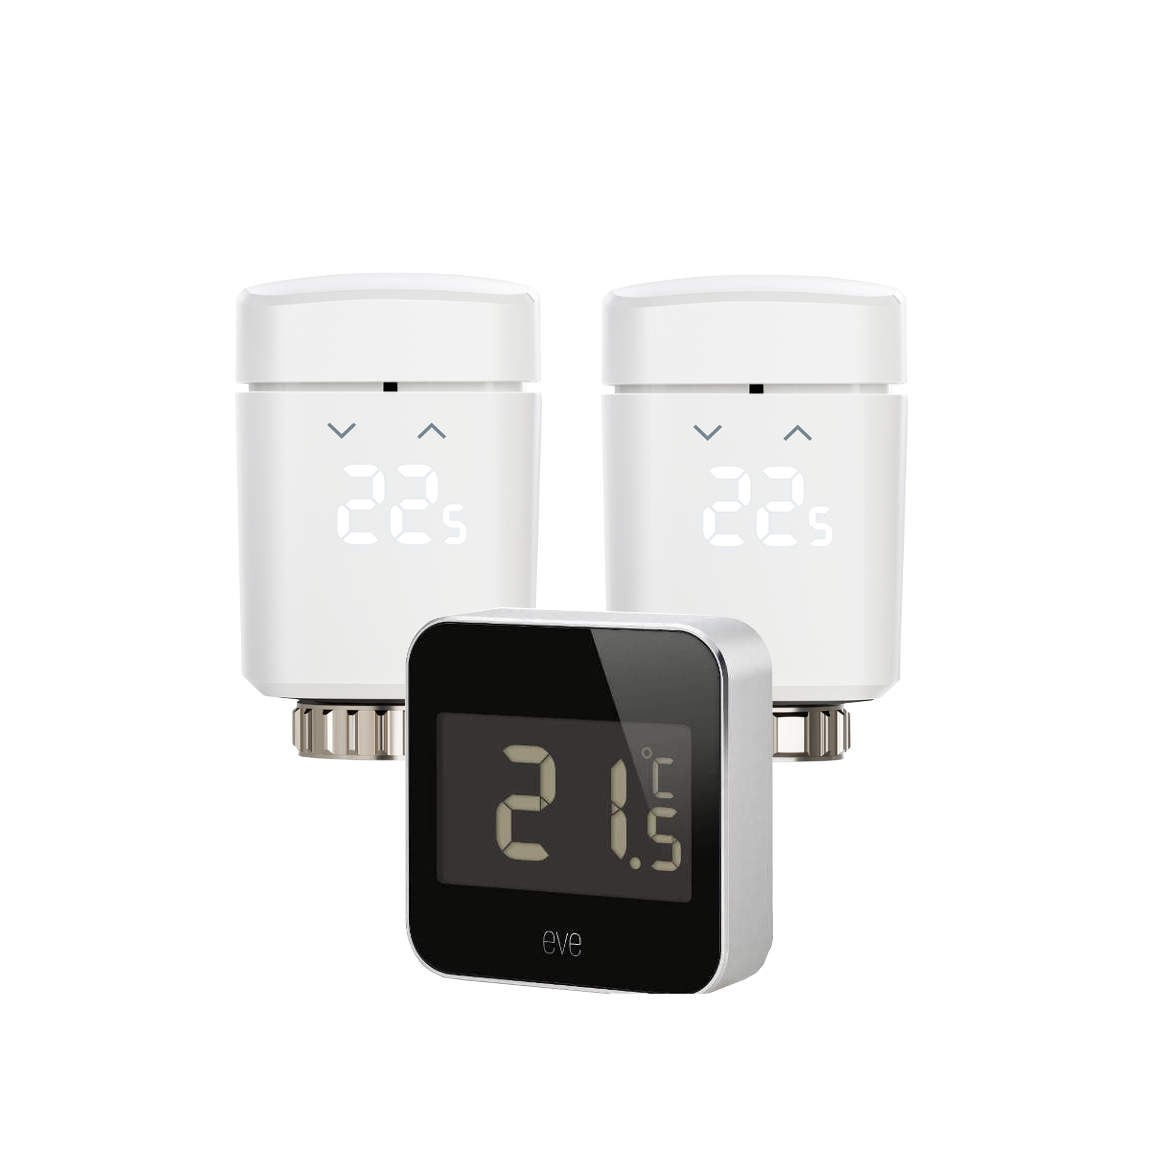 2 Elgato Eve Thermo (2. Gen.) + Eve Degree